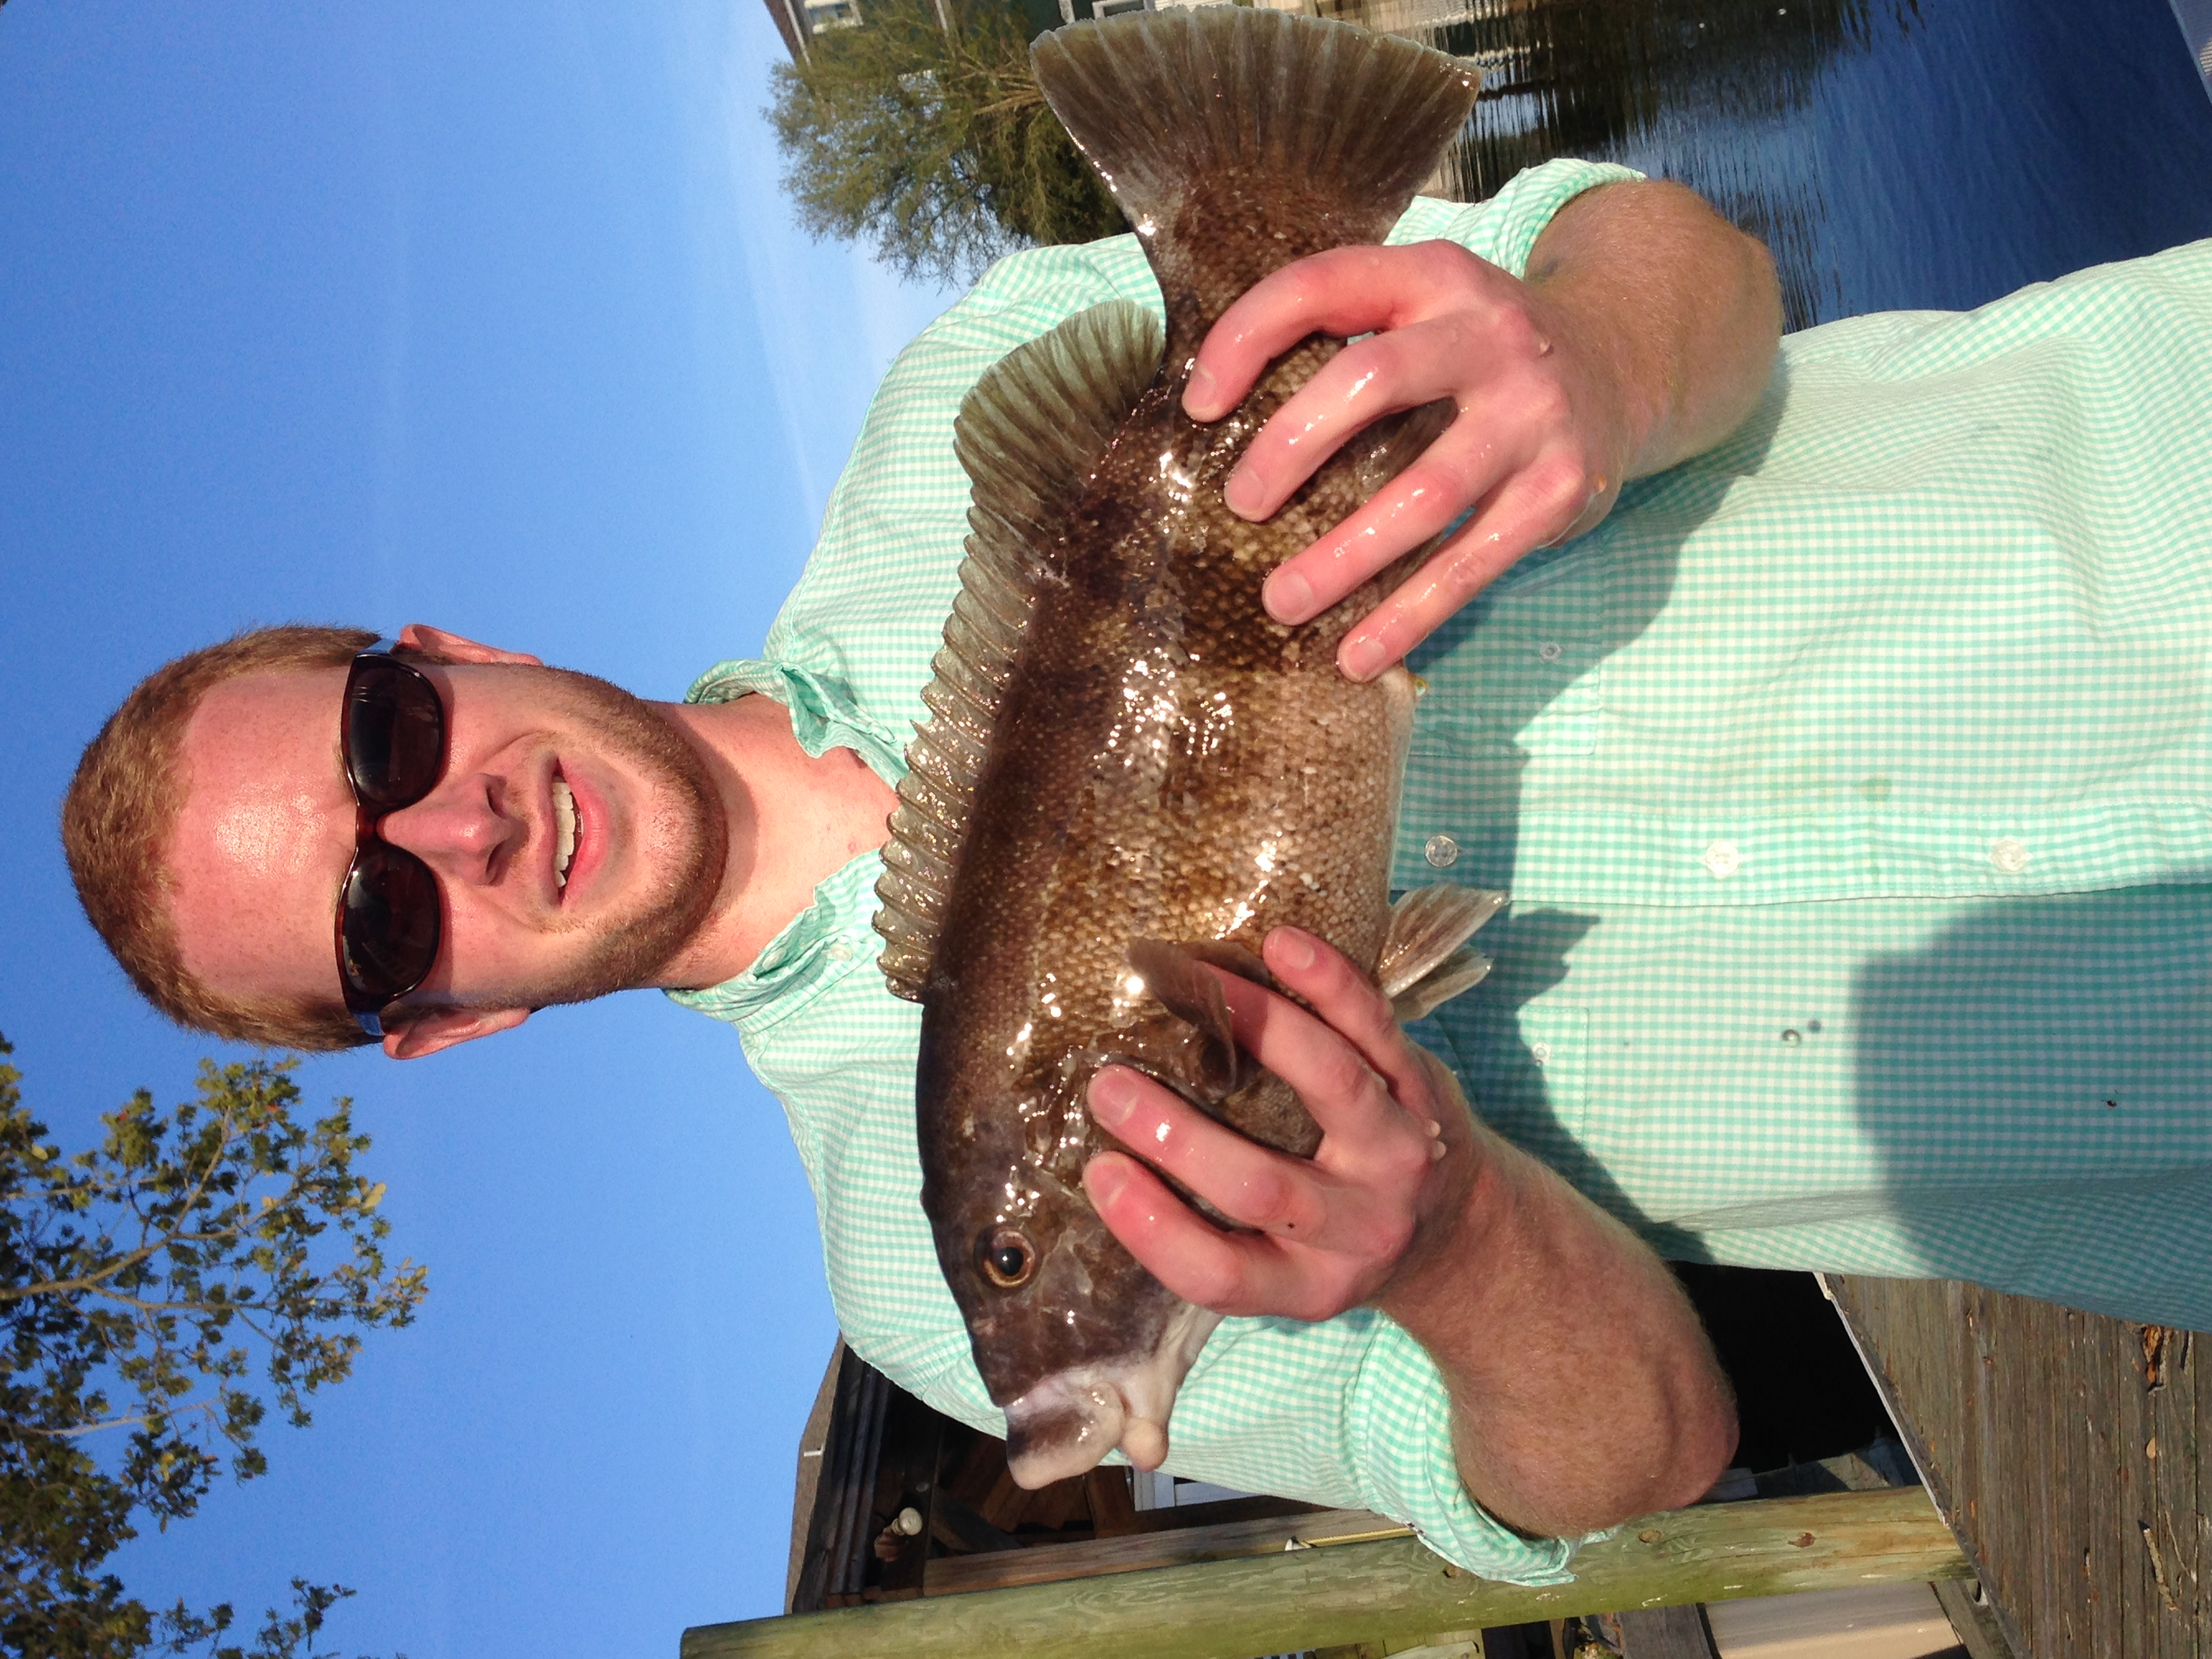 Profishnc charters april fishing report may forecast for Topsail beach fishing report